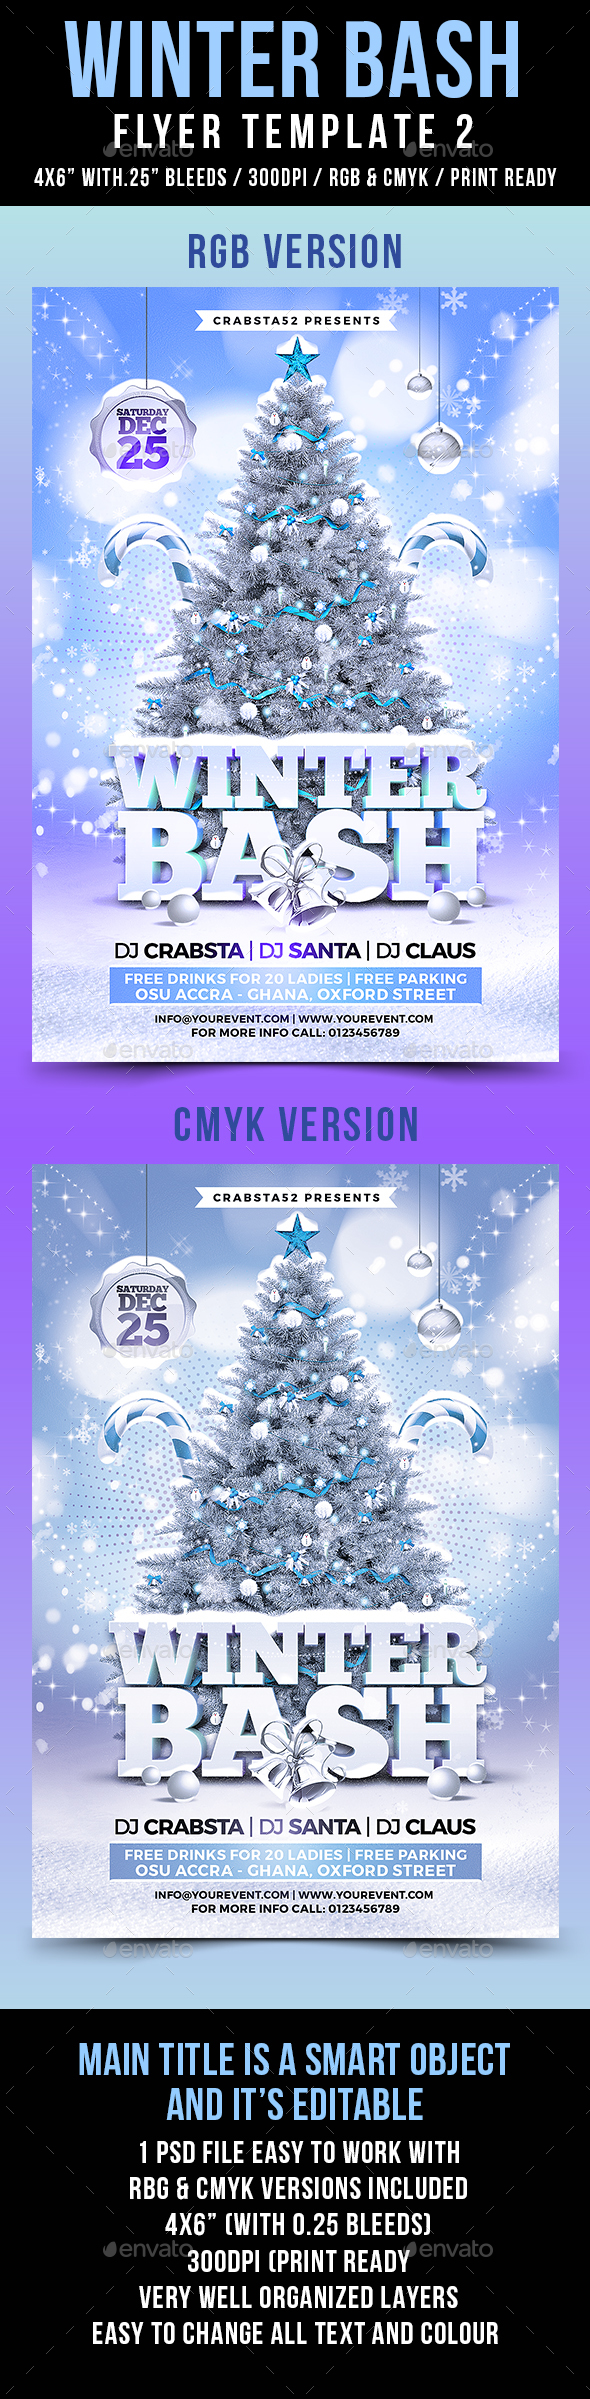 Winter Bash Flyer Template 2 - Flyers Print Templates